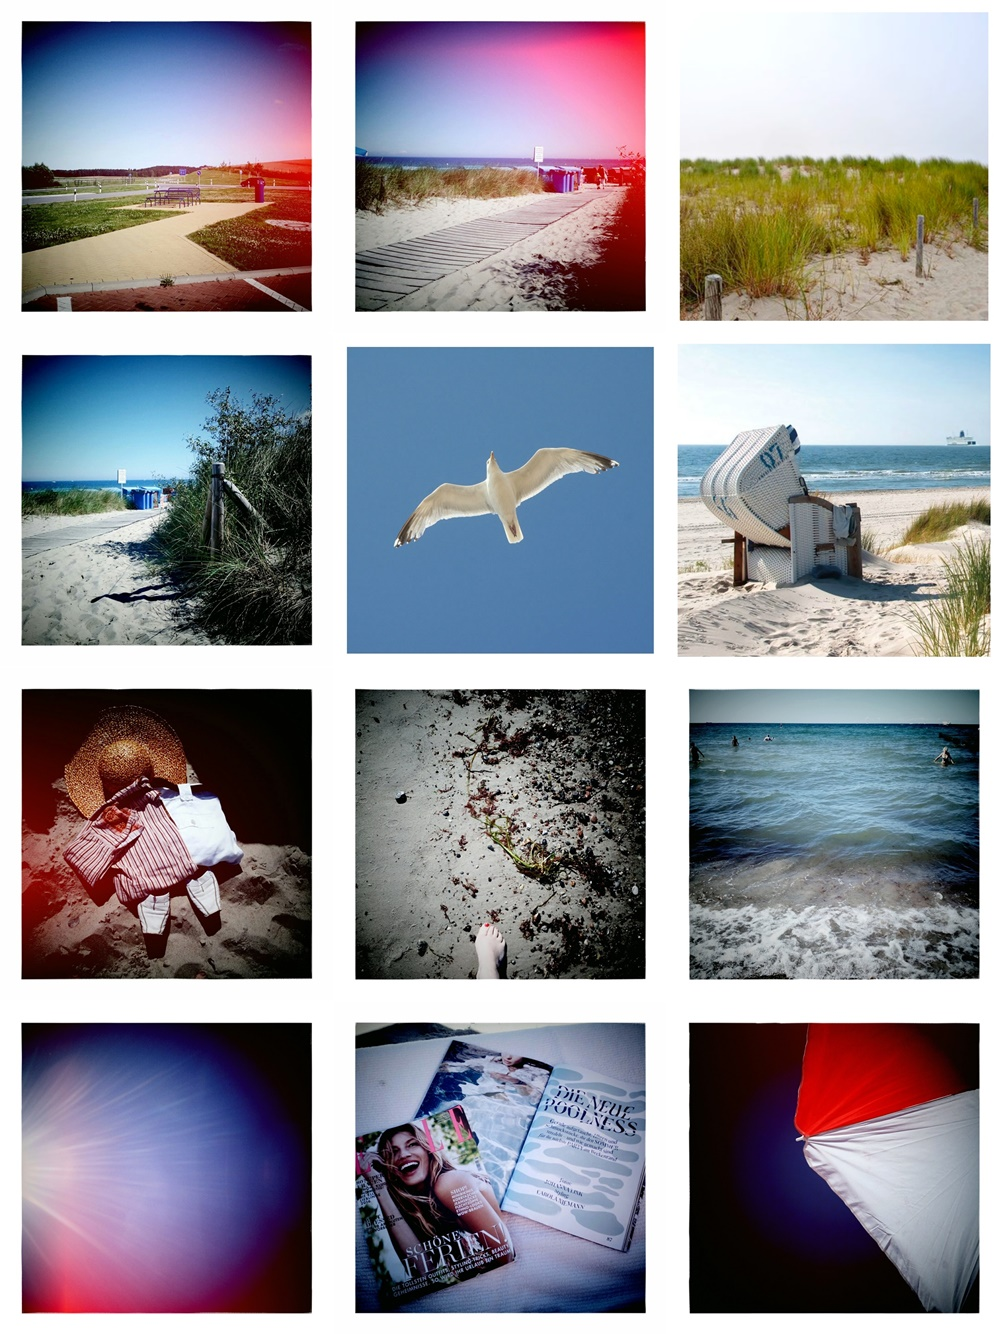 Some more photos in style of old Polaroid Snap Instant photos of warnemuende and beach, beachimpressions